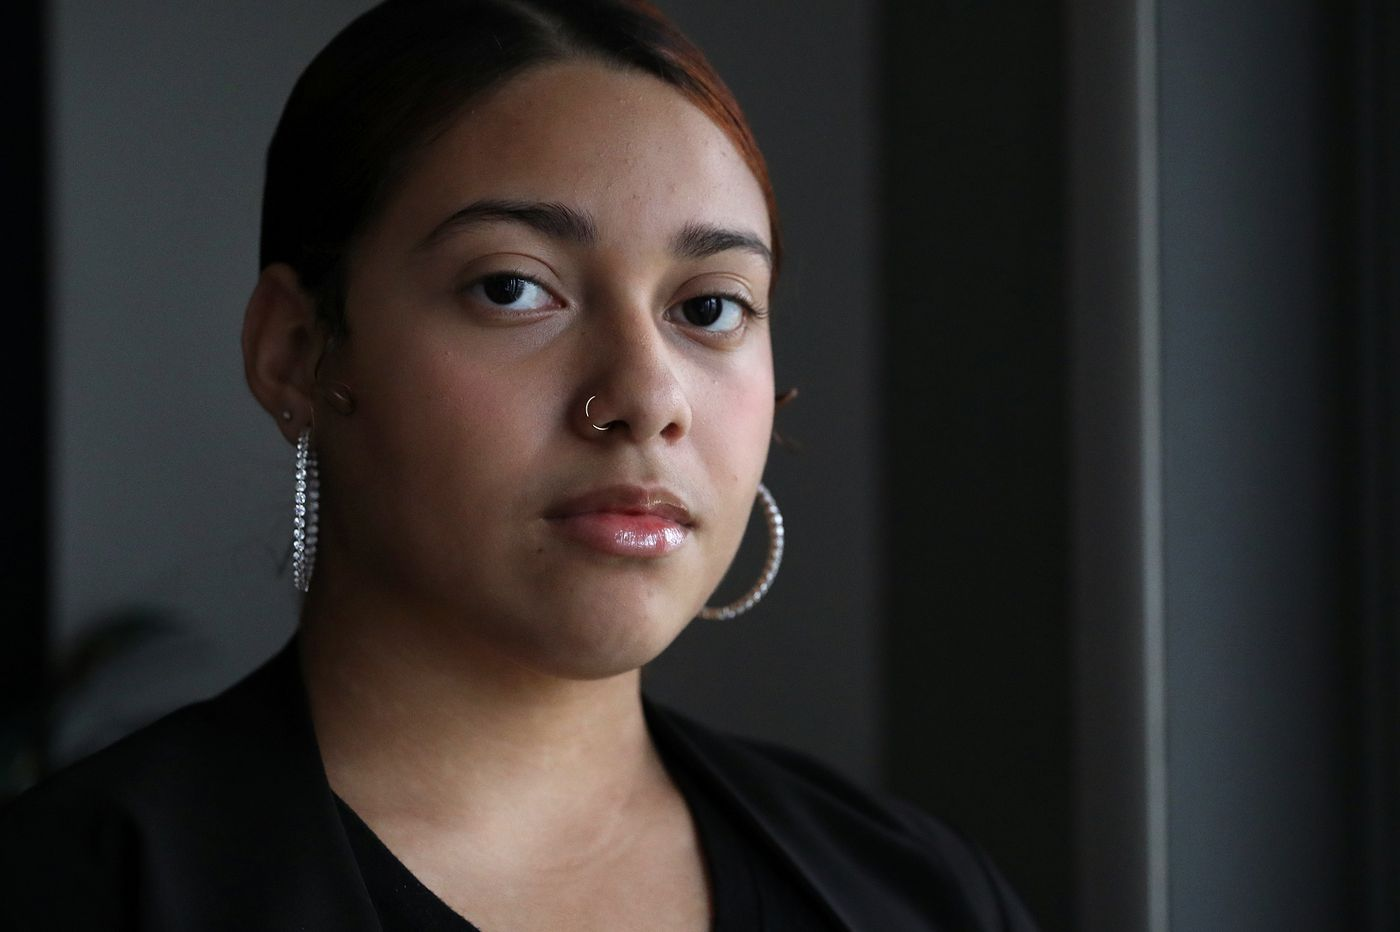 Philadelphia students tackle gun violence in the midst of a pandemic, election and racial reckoning   Helen Ubiñas